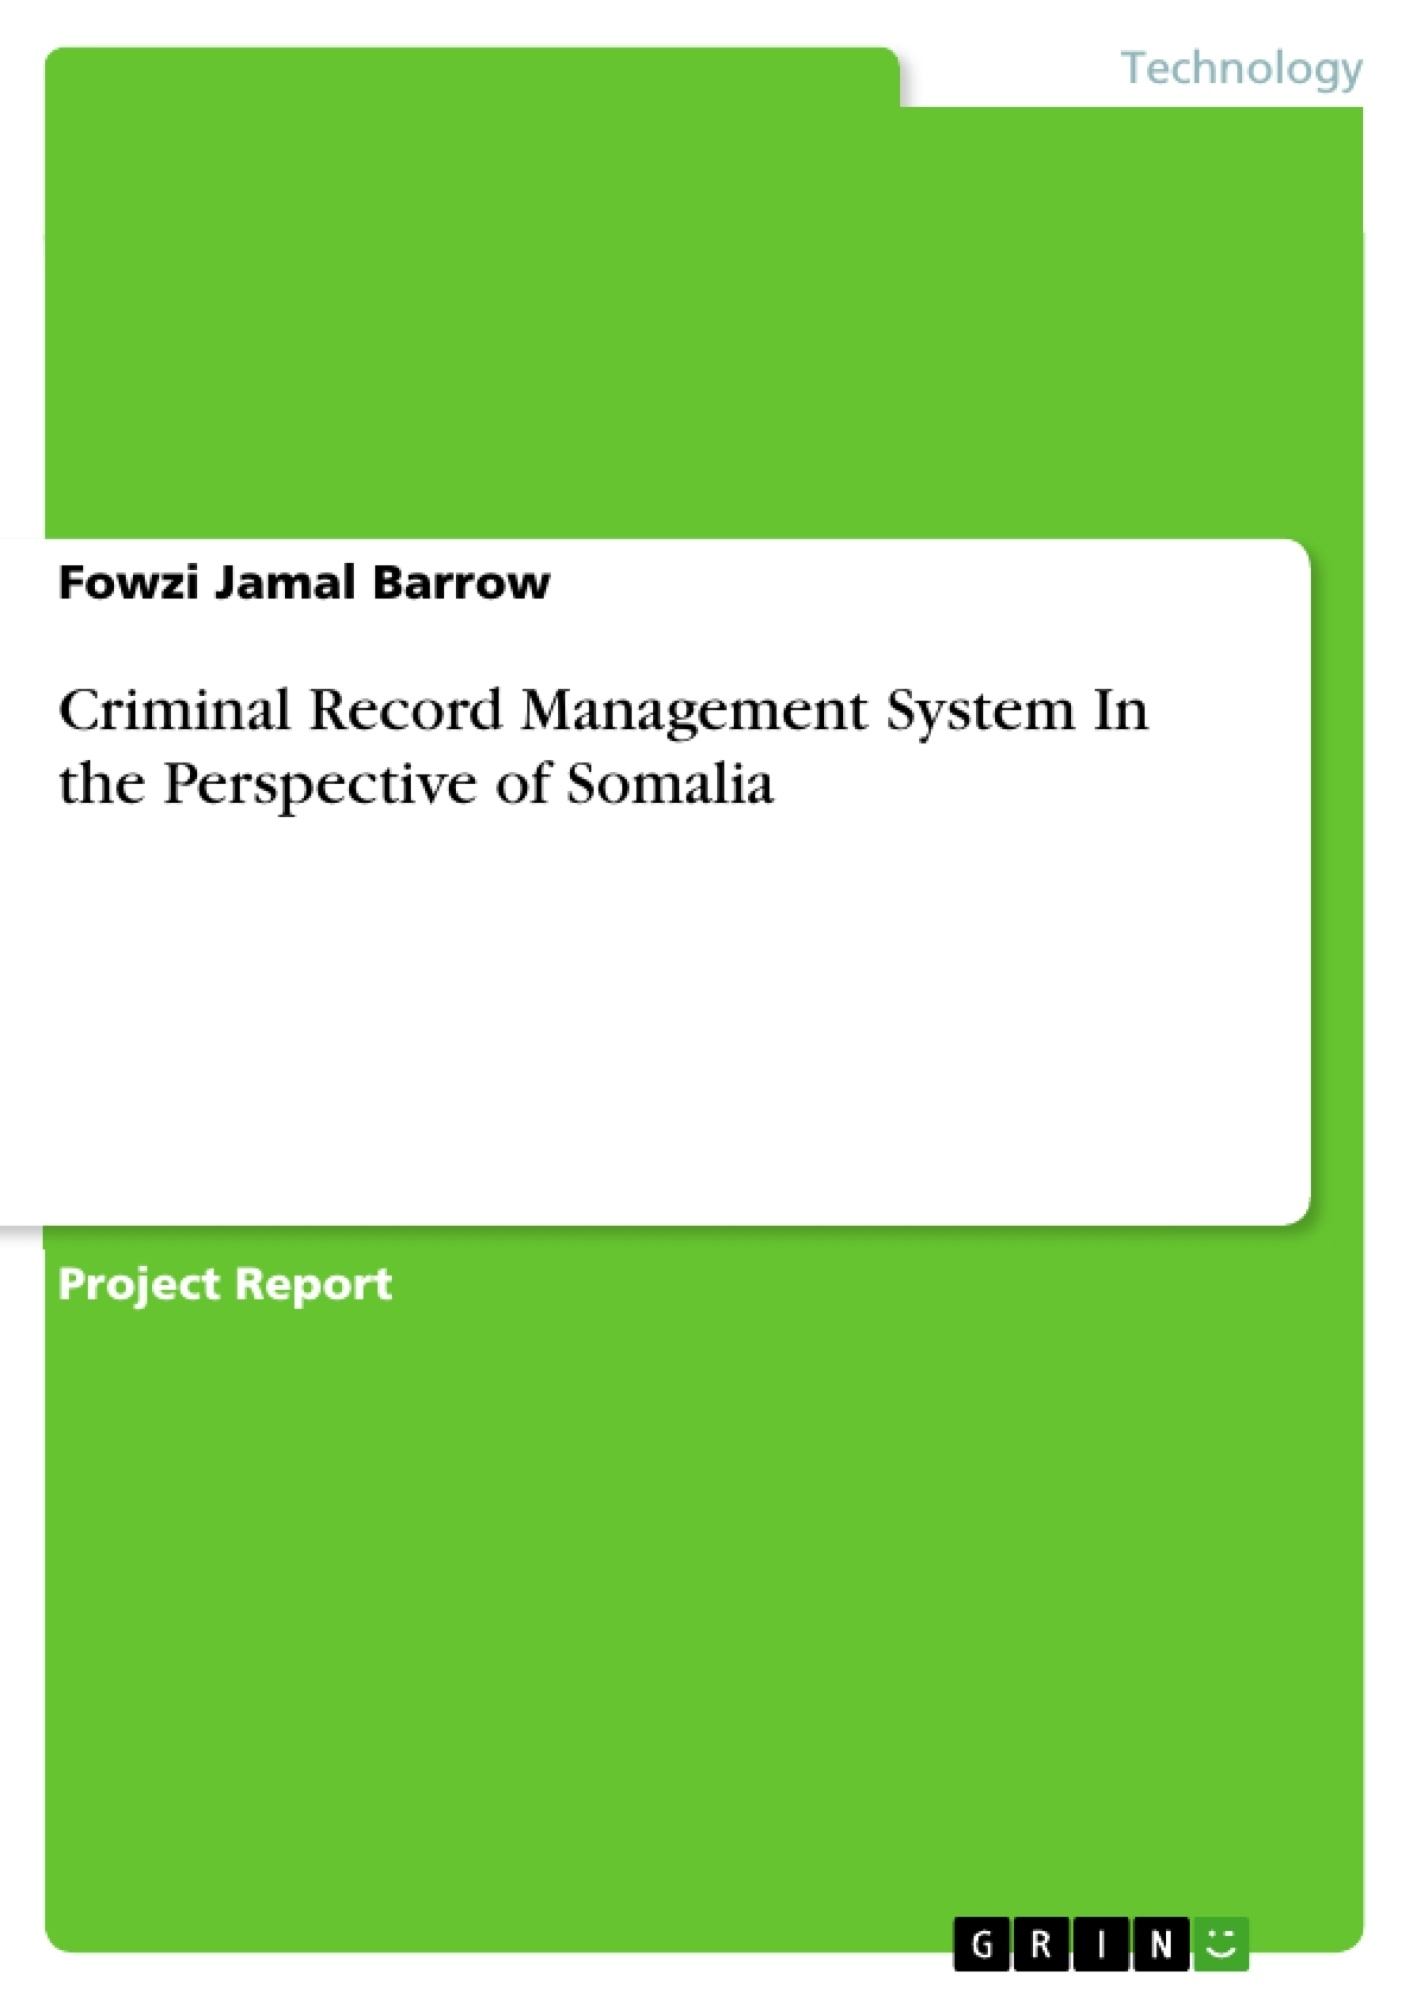 GRIN - Criminal Record Management System In the Perspective of Somalia